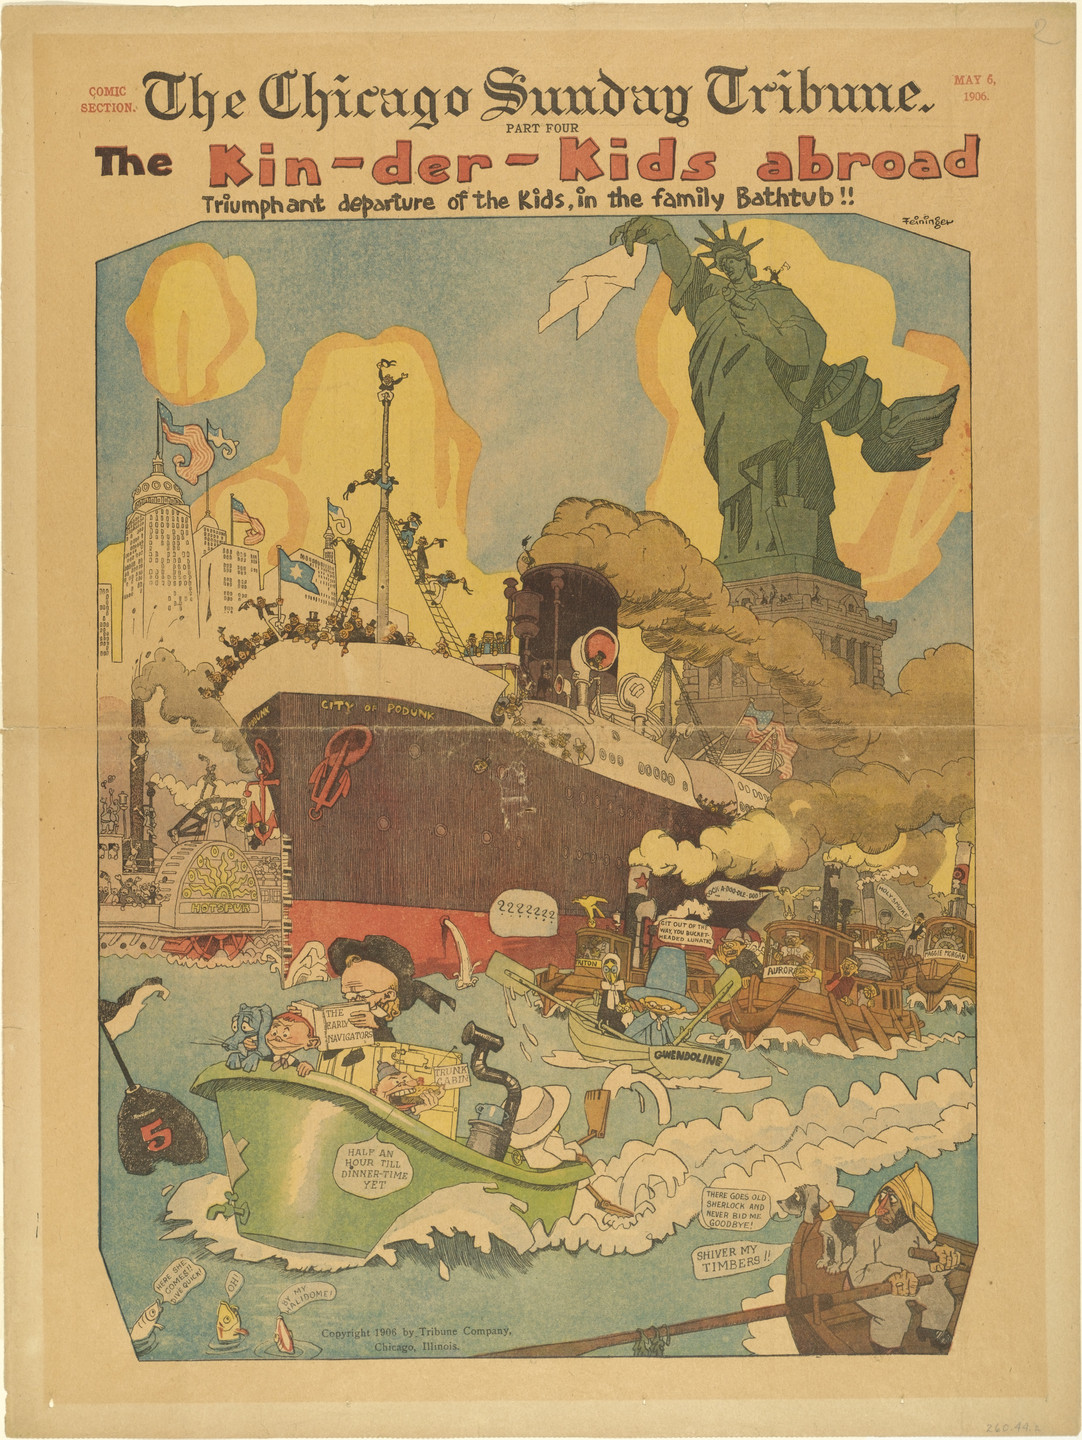 Lyonel Feininger. The Kin-der-Kids Abroad: Triumphant Departure of the Kids, in the Family Bathtub!! from The Chicago Sunday Tribune. May 6, 1906